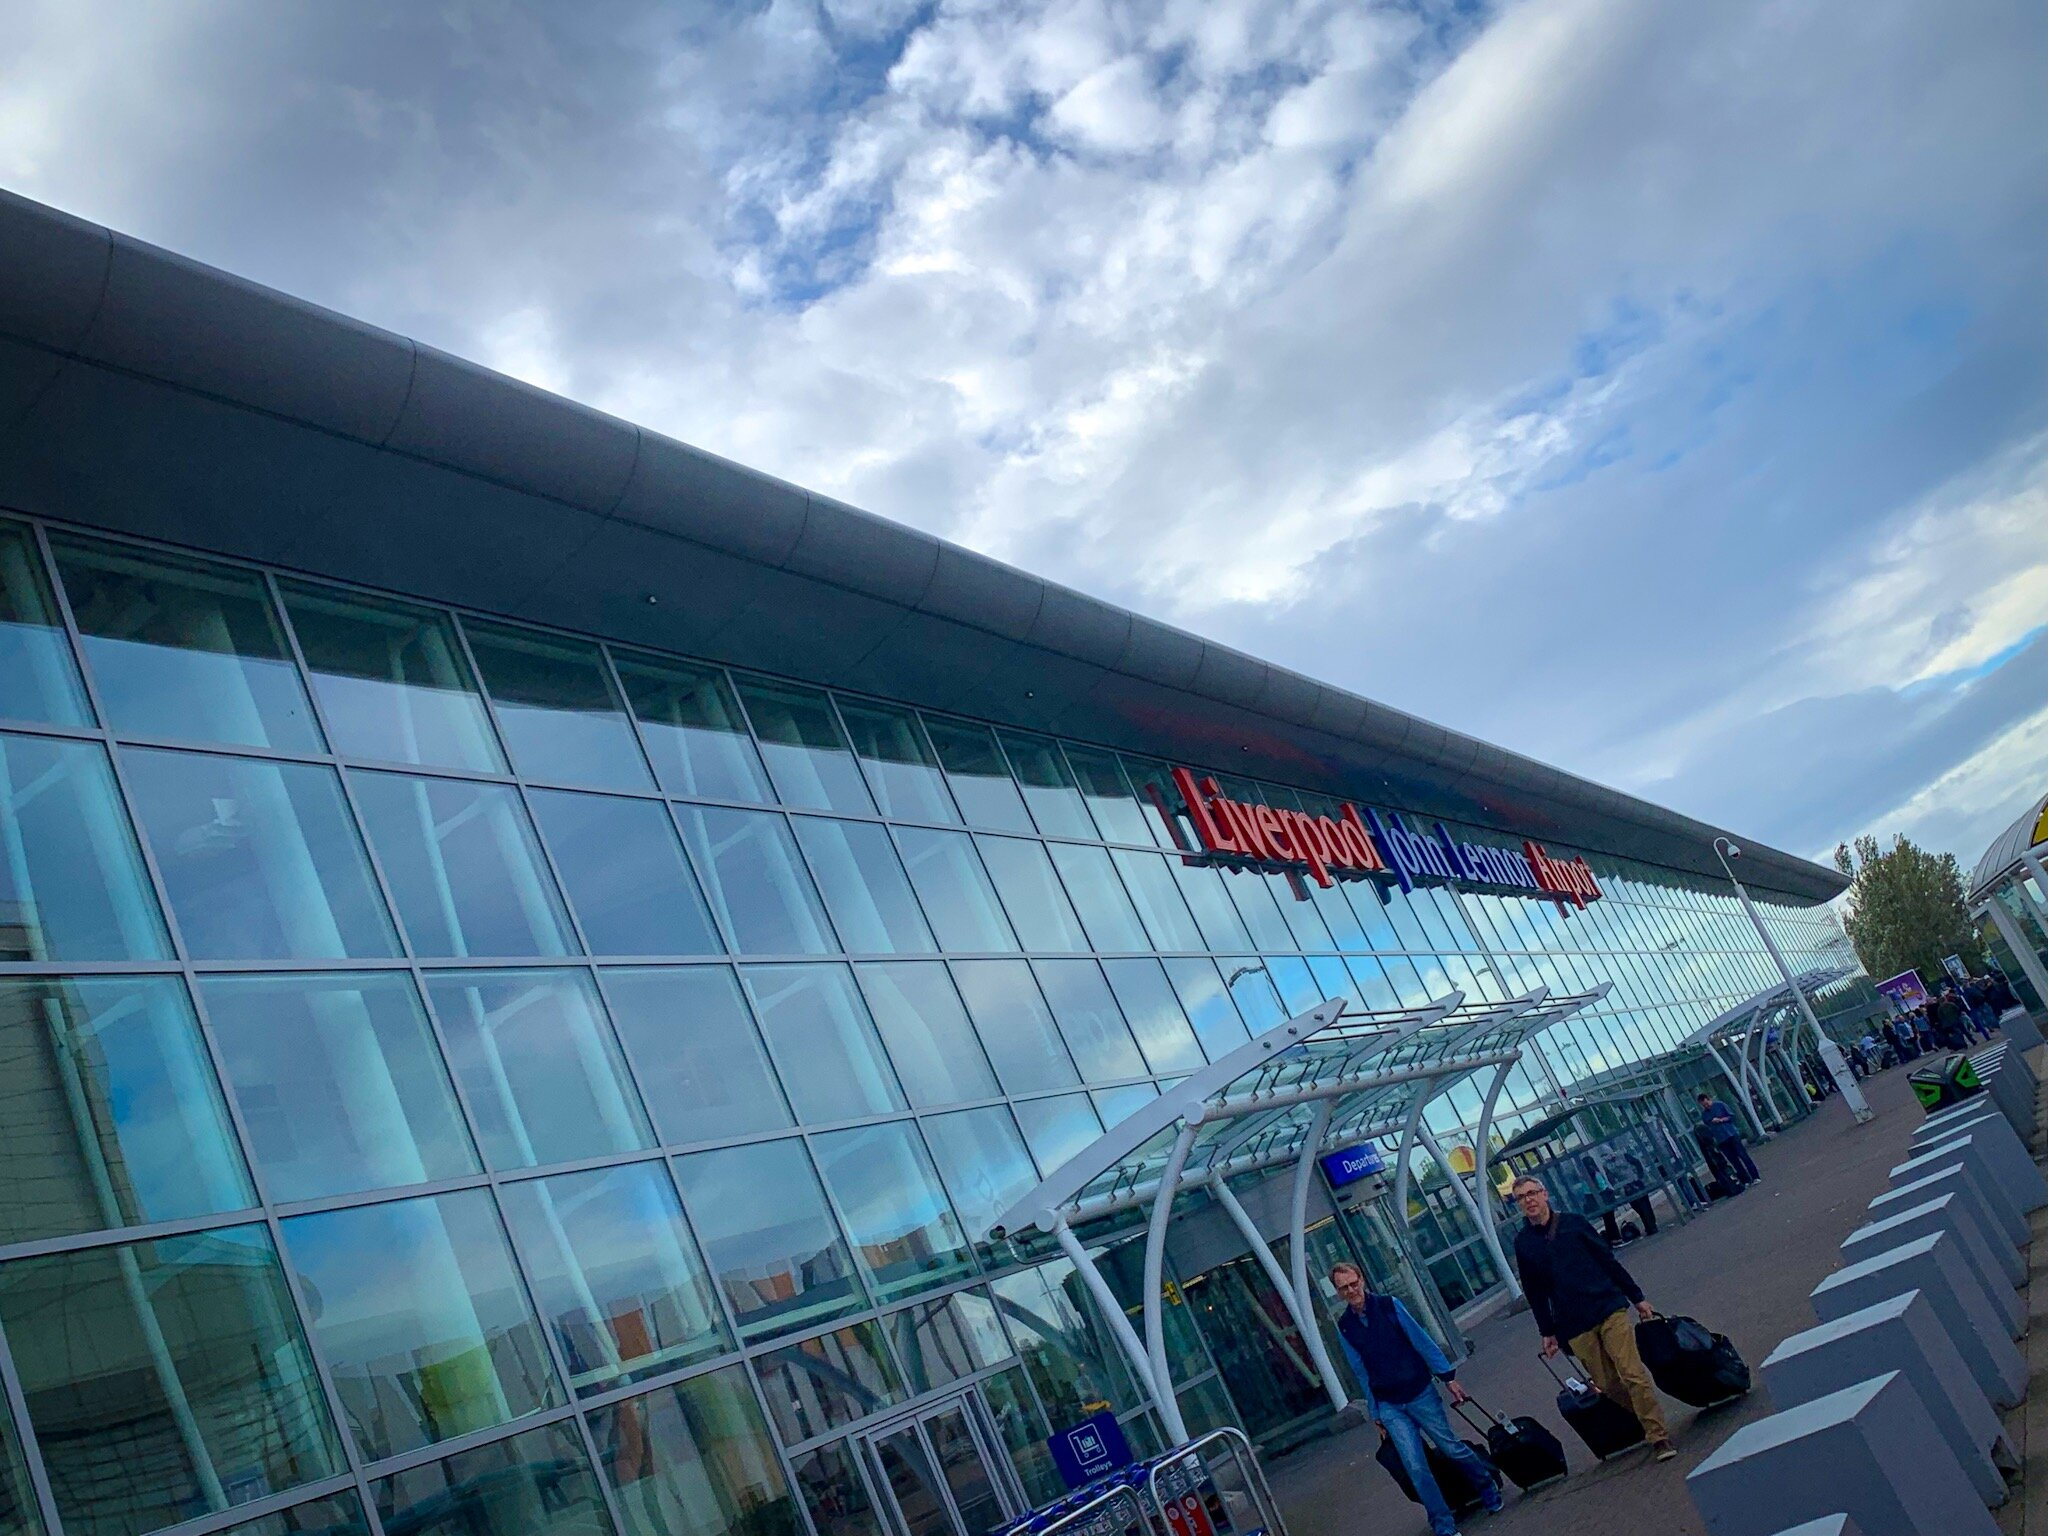 The exterior of Liverpool John Lennon Airport.